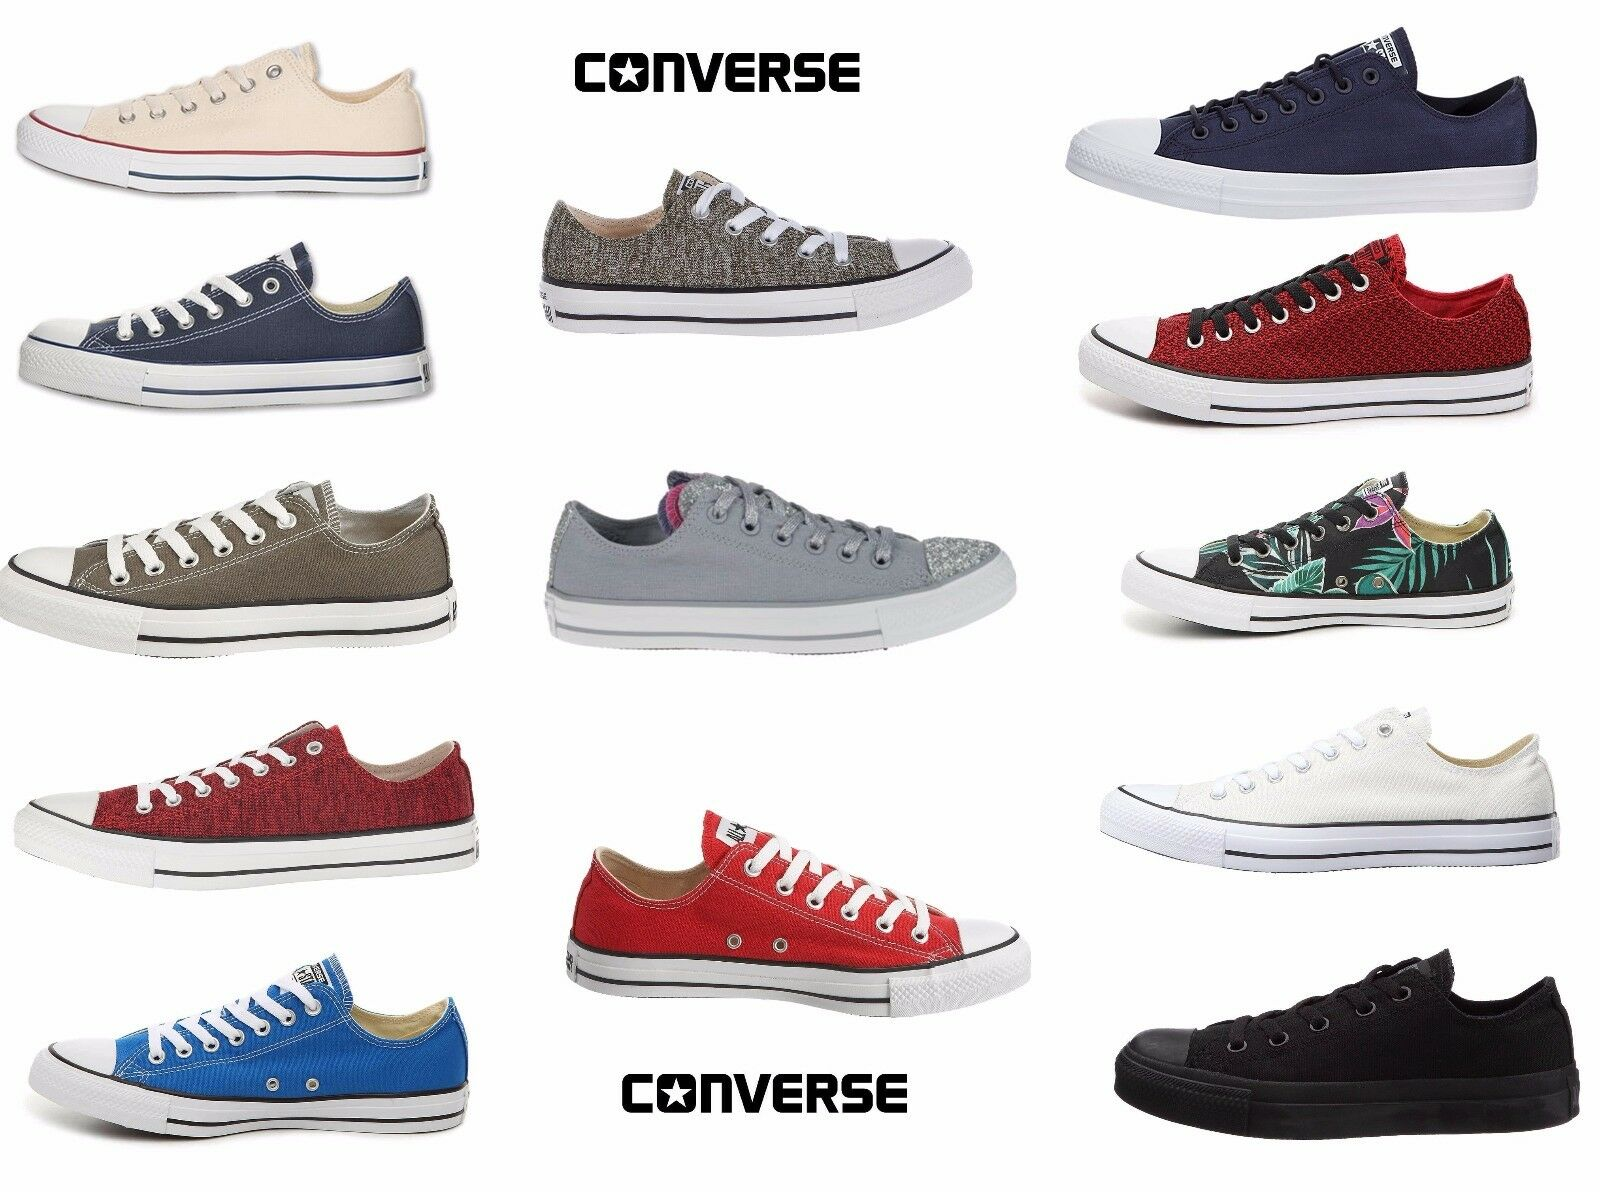 separation shoes 2ae27 fcbd1 CONVERSE Homme Femme UNISEX ALL ALL ALL STAR Casual Low Top Sneakers  Chaussures NEW f664c1